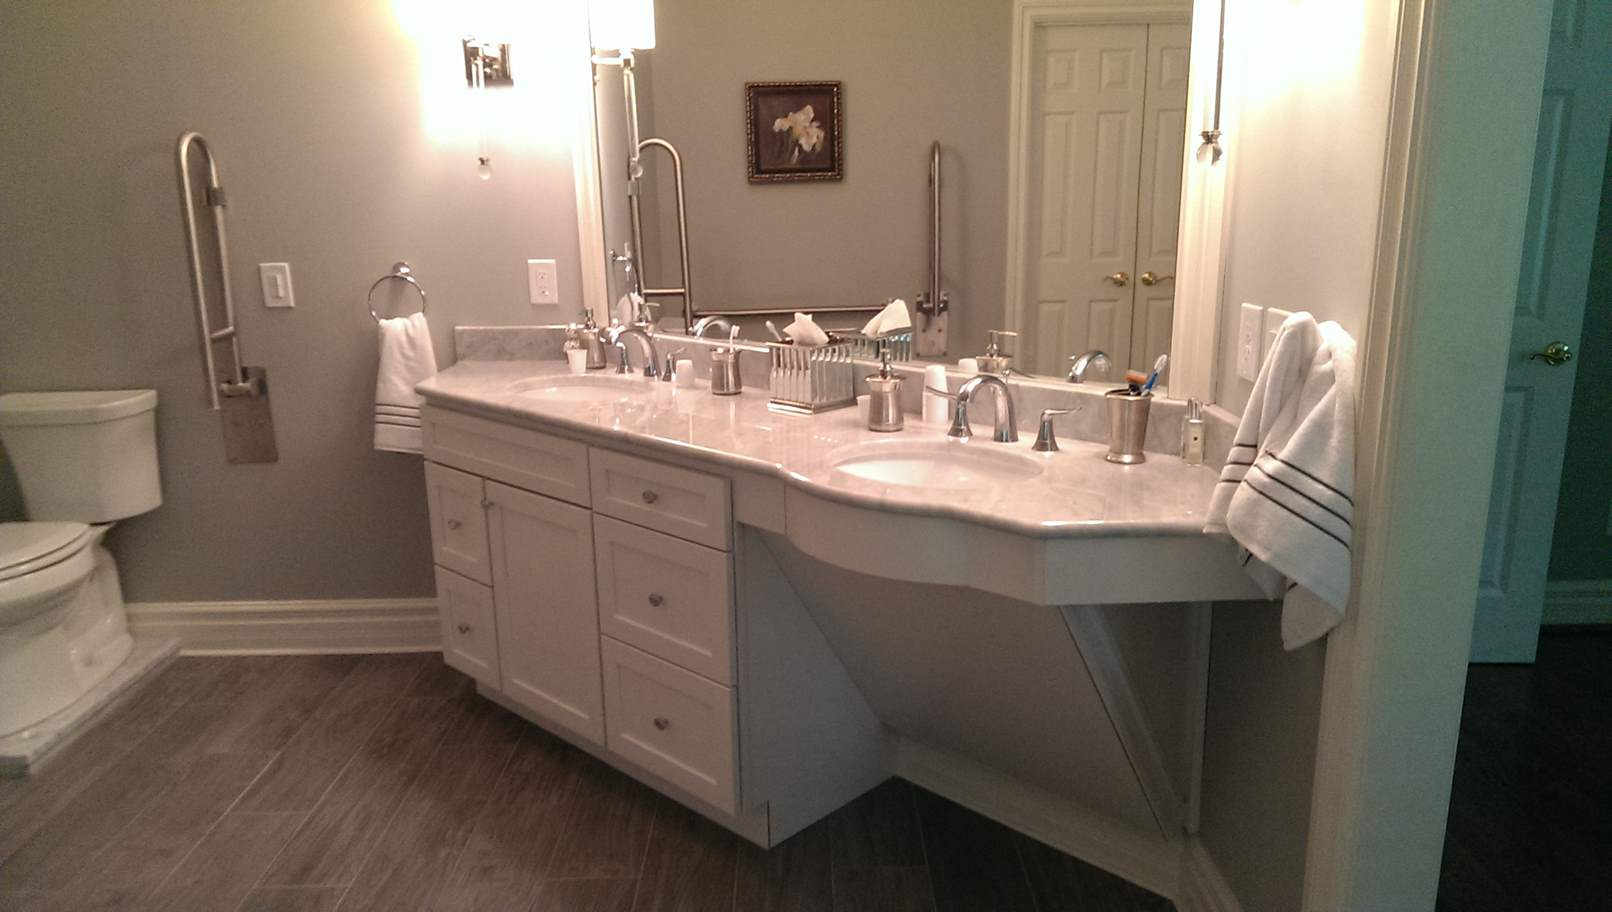 Tips for Remodeling for Handicapped Accessibility